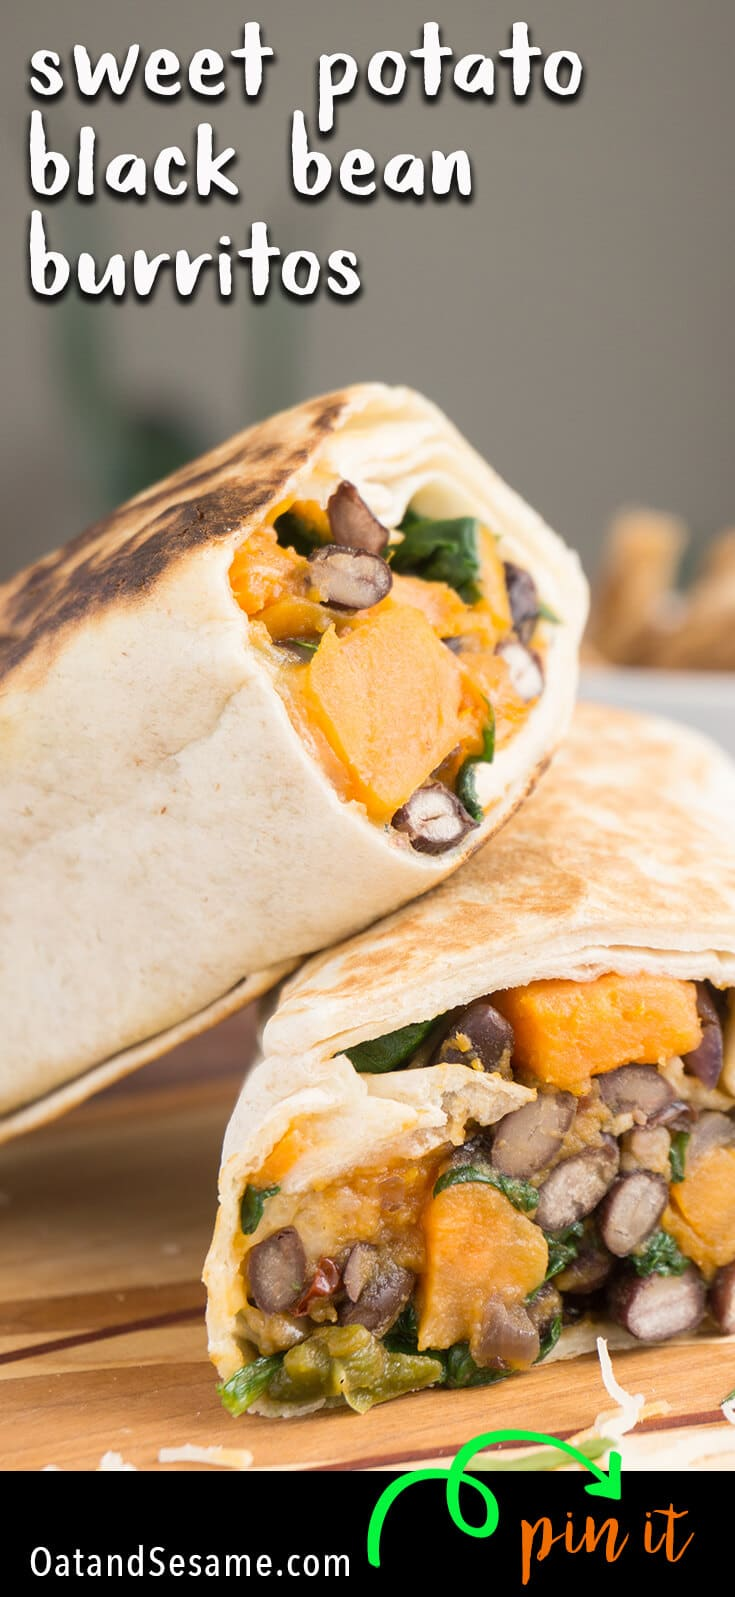 Spinach, Sweet Potato & Black Bean Burritos - Oat&Sesame